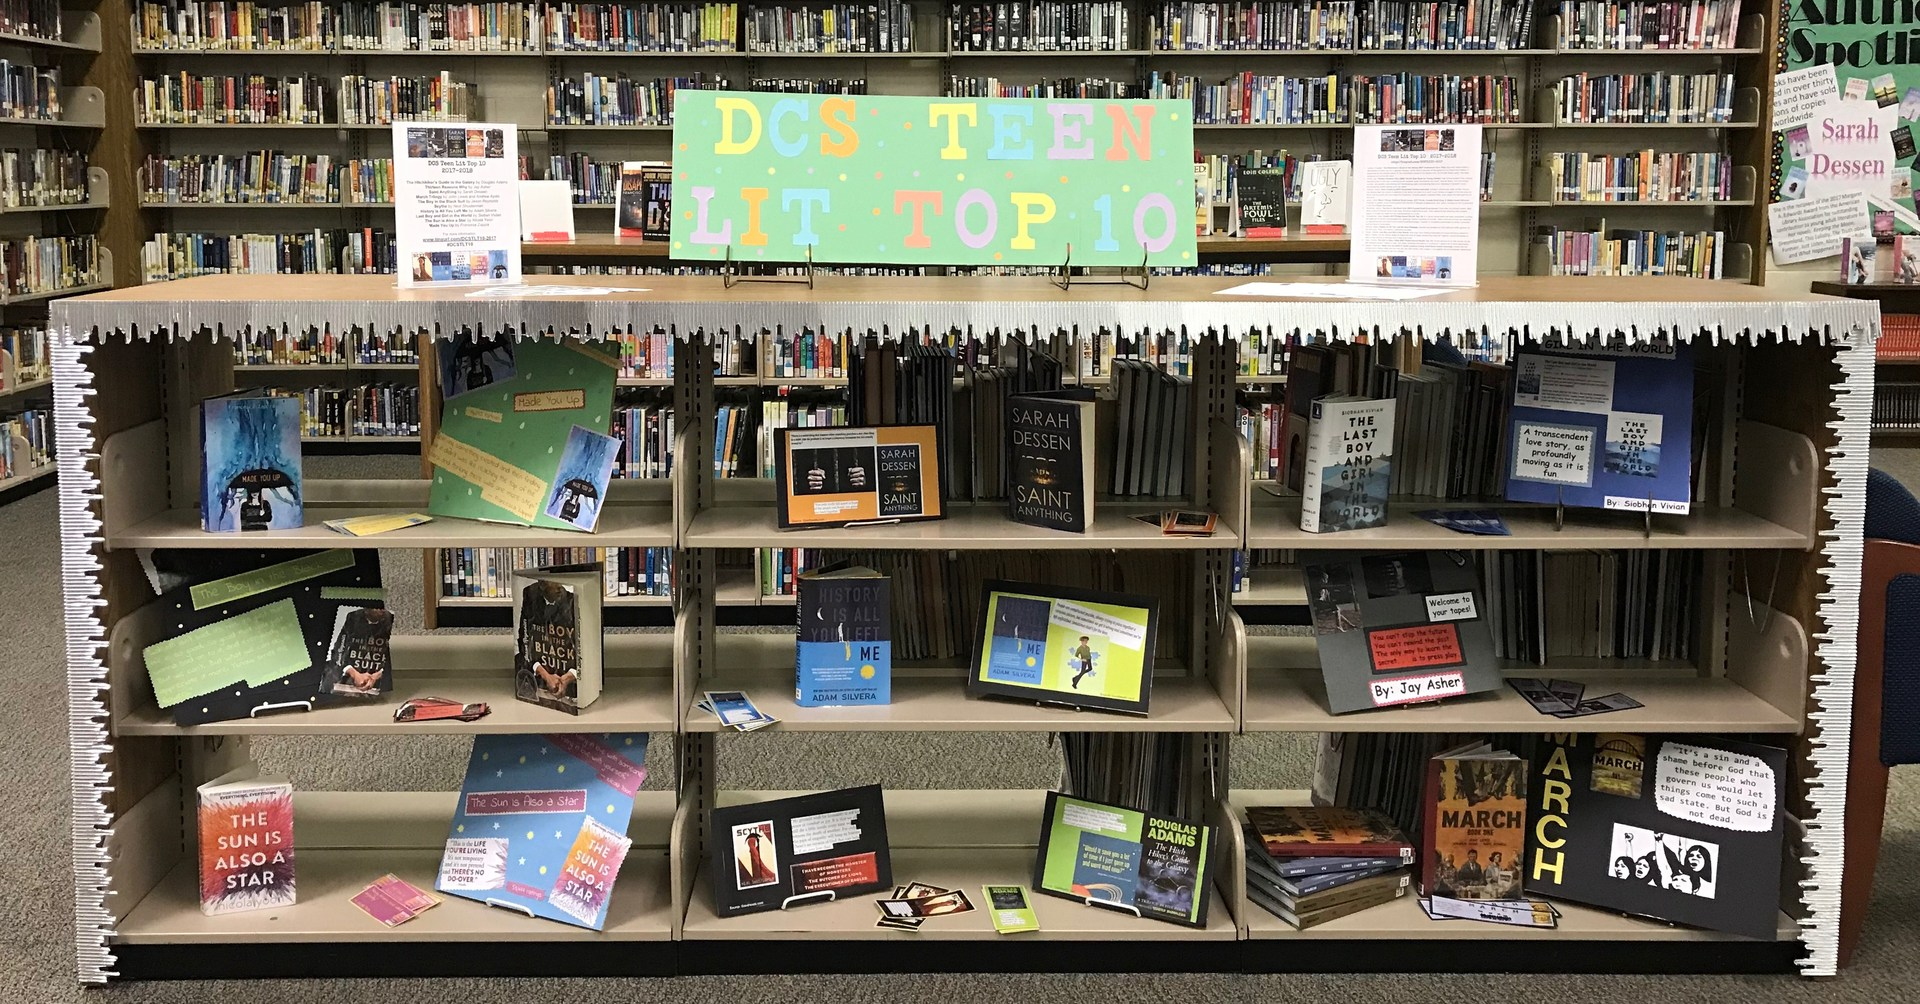 DCS Teen Lit Top 10 book display.